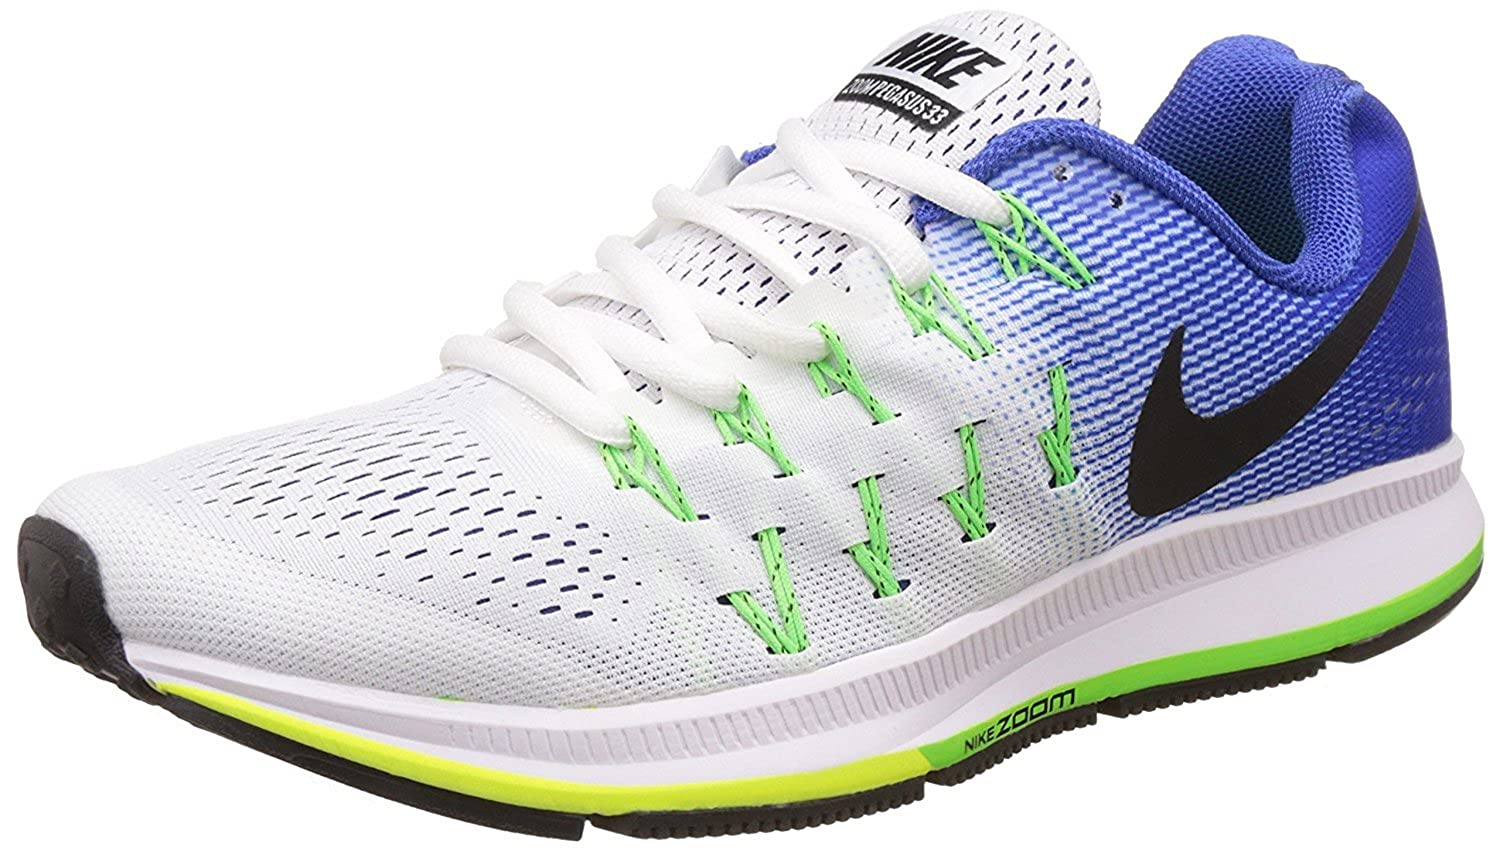 4832a7364 Airmax Air Zoom Pegasus 33 WHITE BLUE Running Sport Shoes: Buy Online at  Low Prices in India - Amazon.in